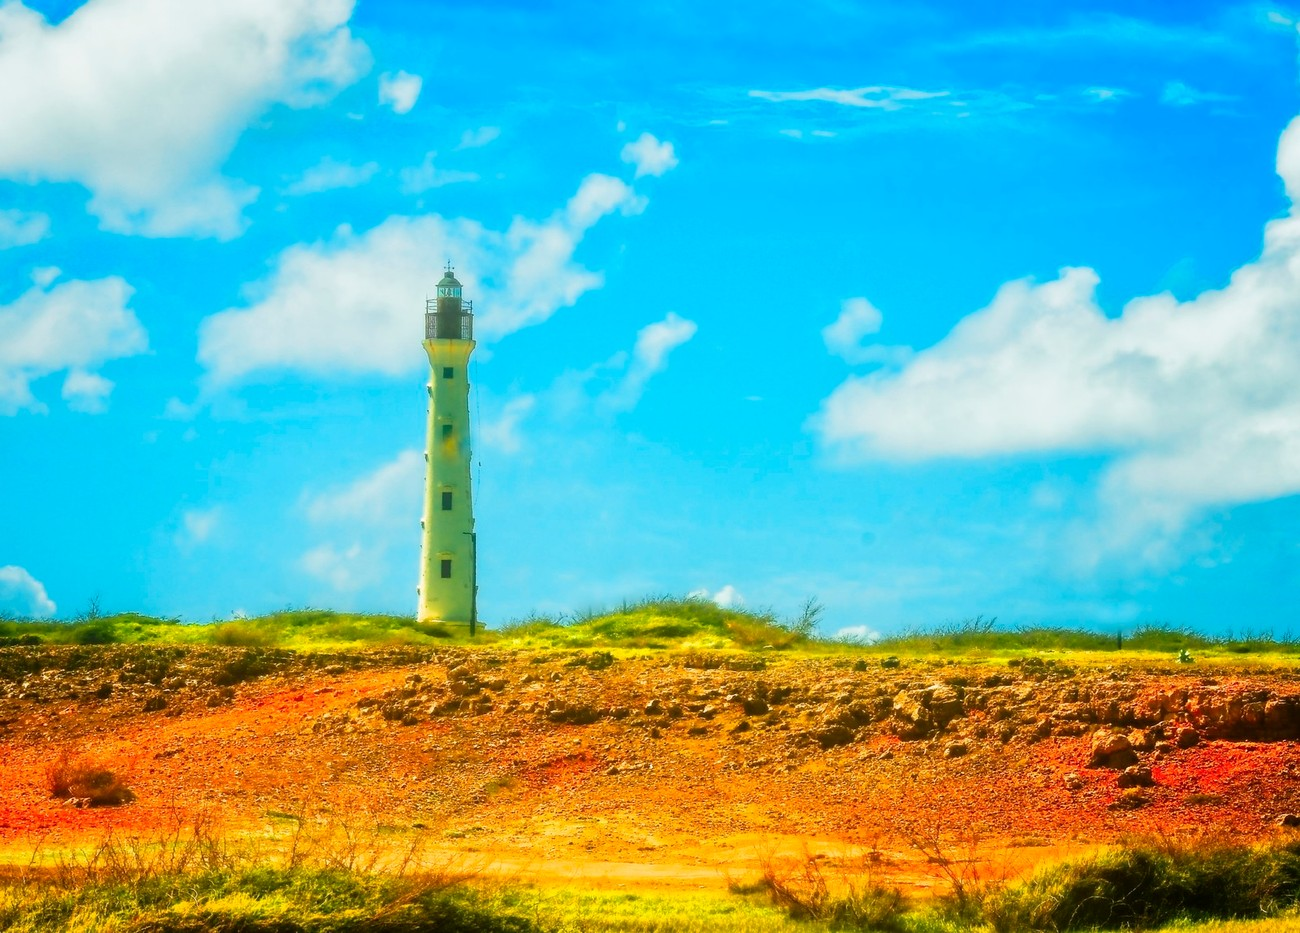 An old lighthouse at the end of the island is very old, and popular among the tourists in Aruba. The views seem better from the front and back of it.